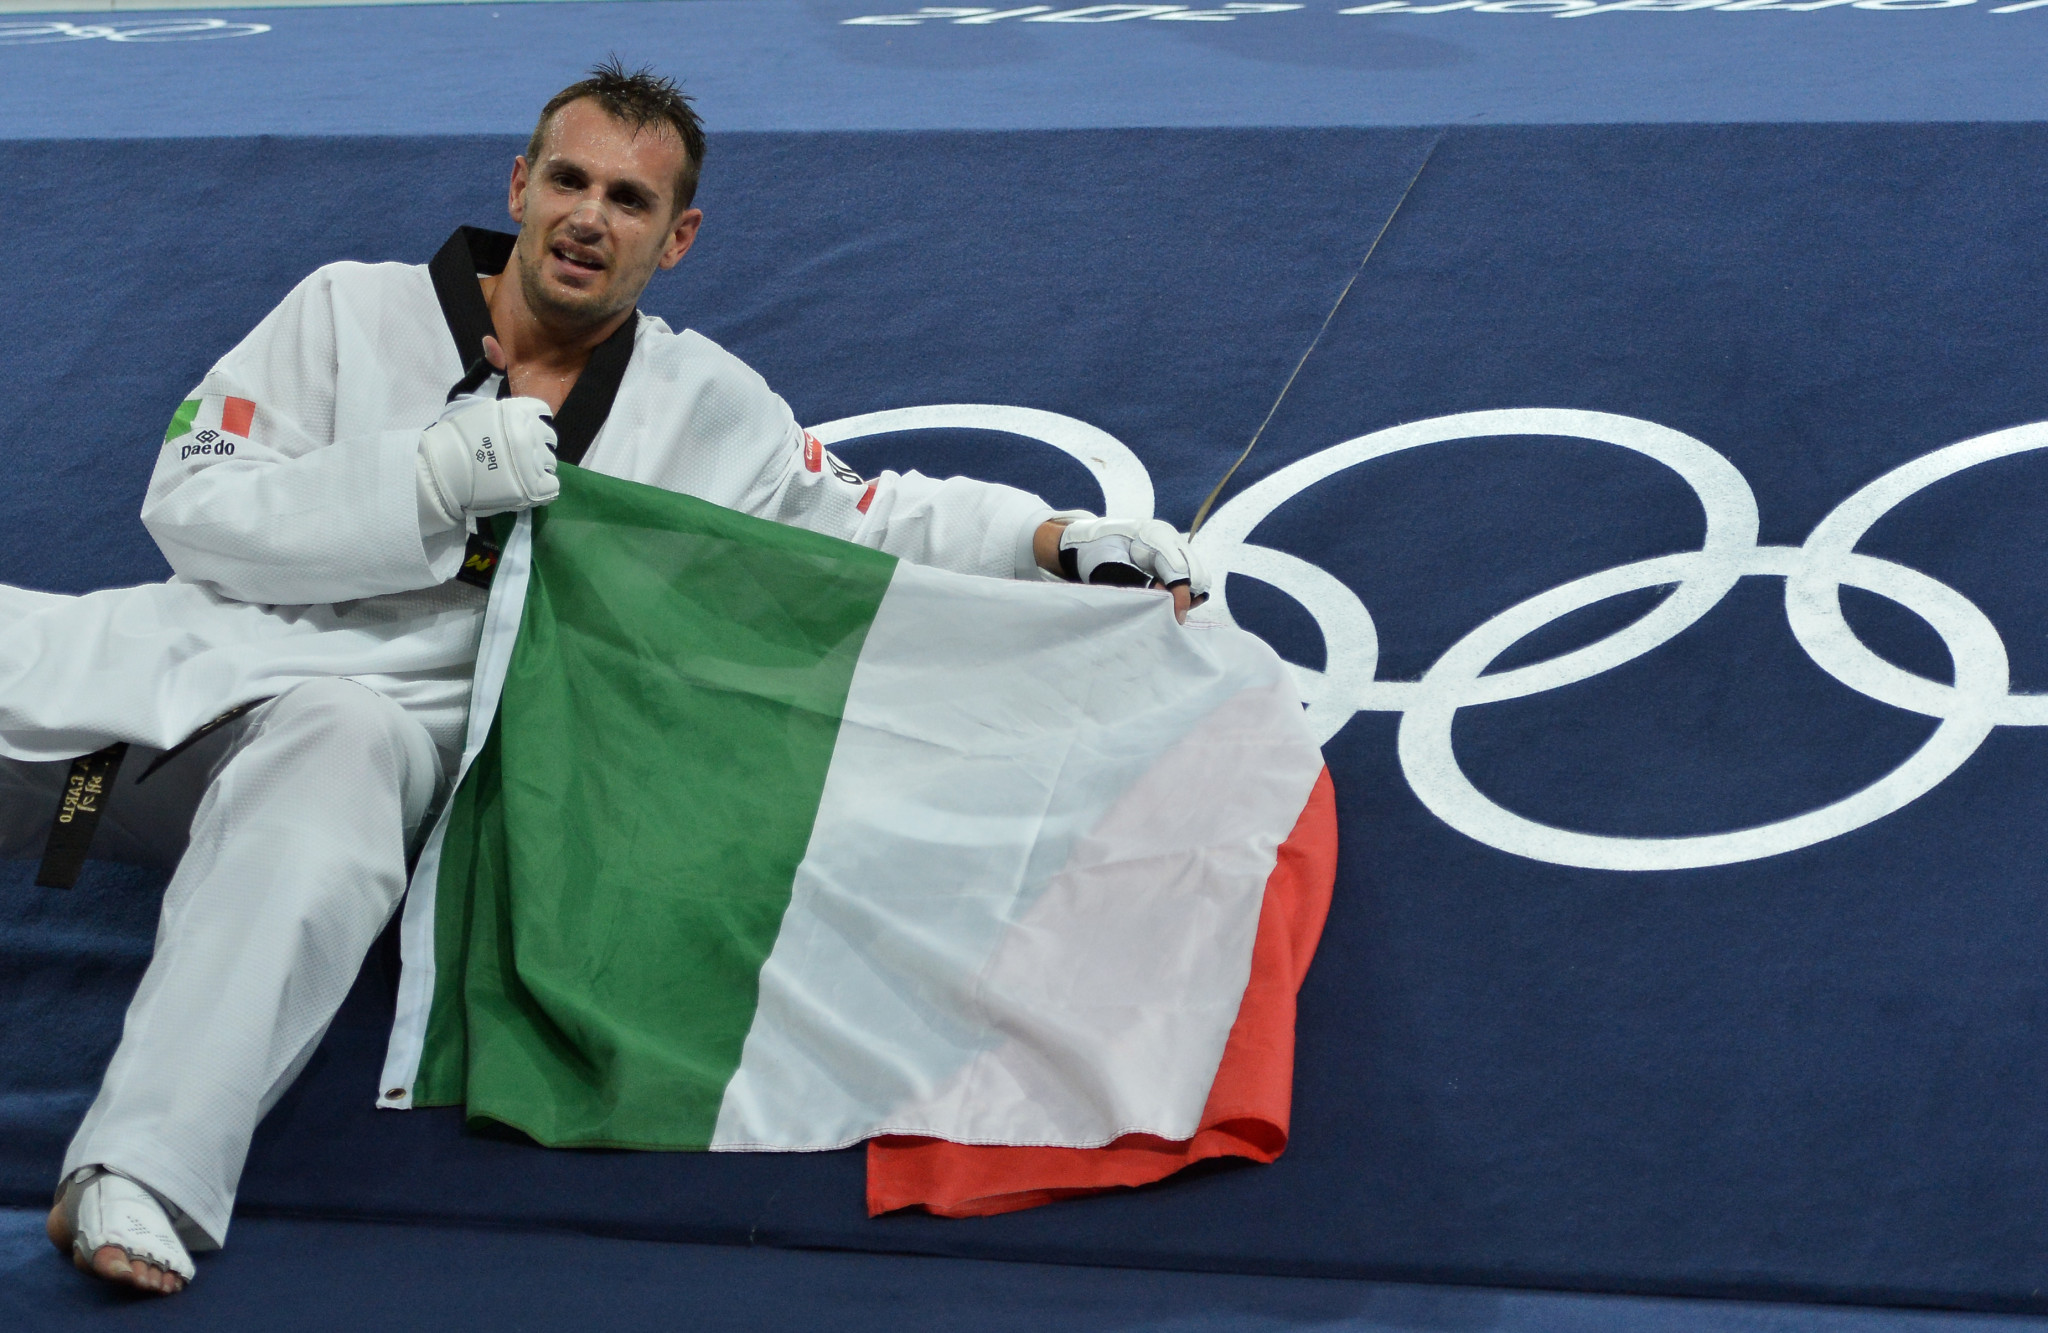 Olympic gold medallist Carlo Molfetta won re-election as an athletes' representative ©Getty Images